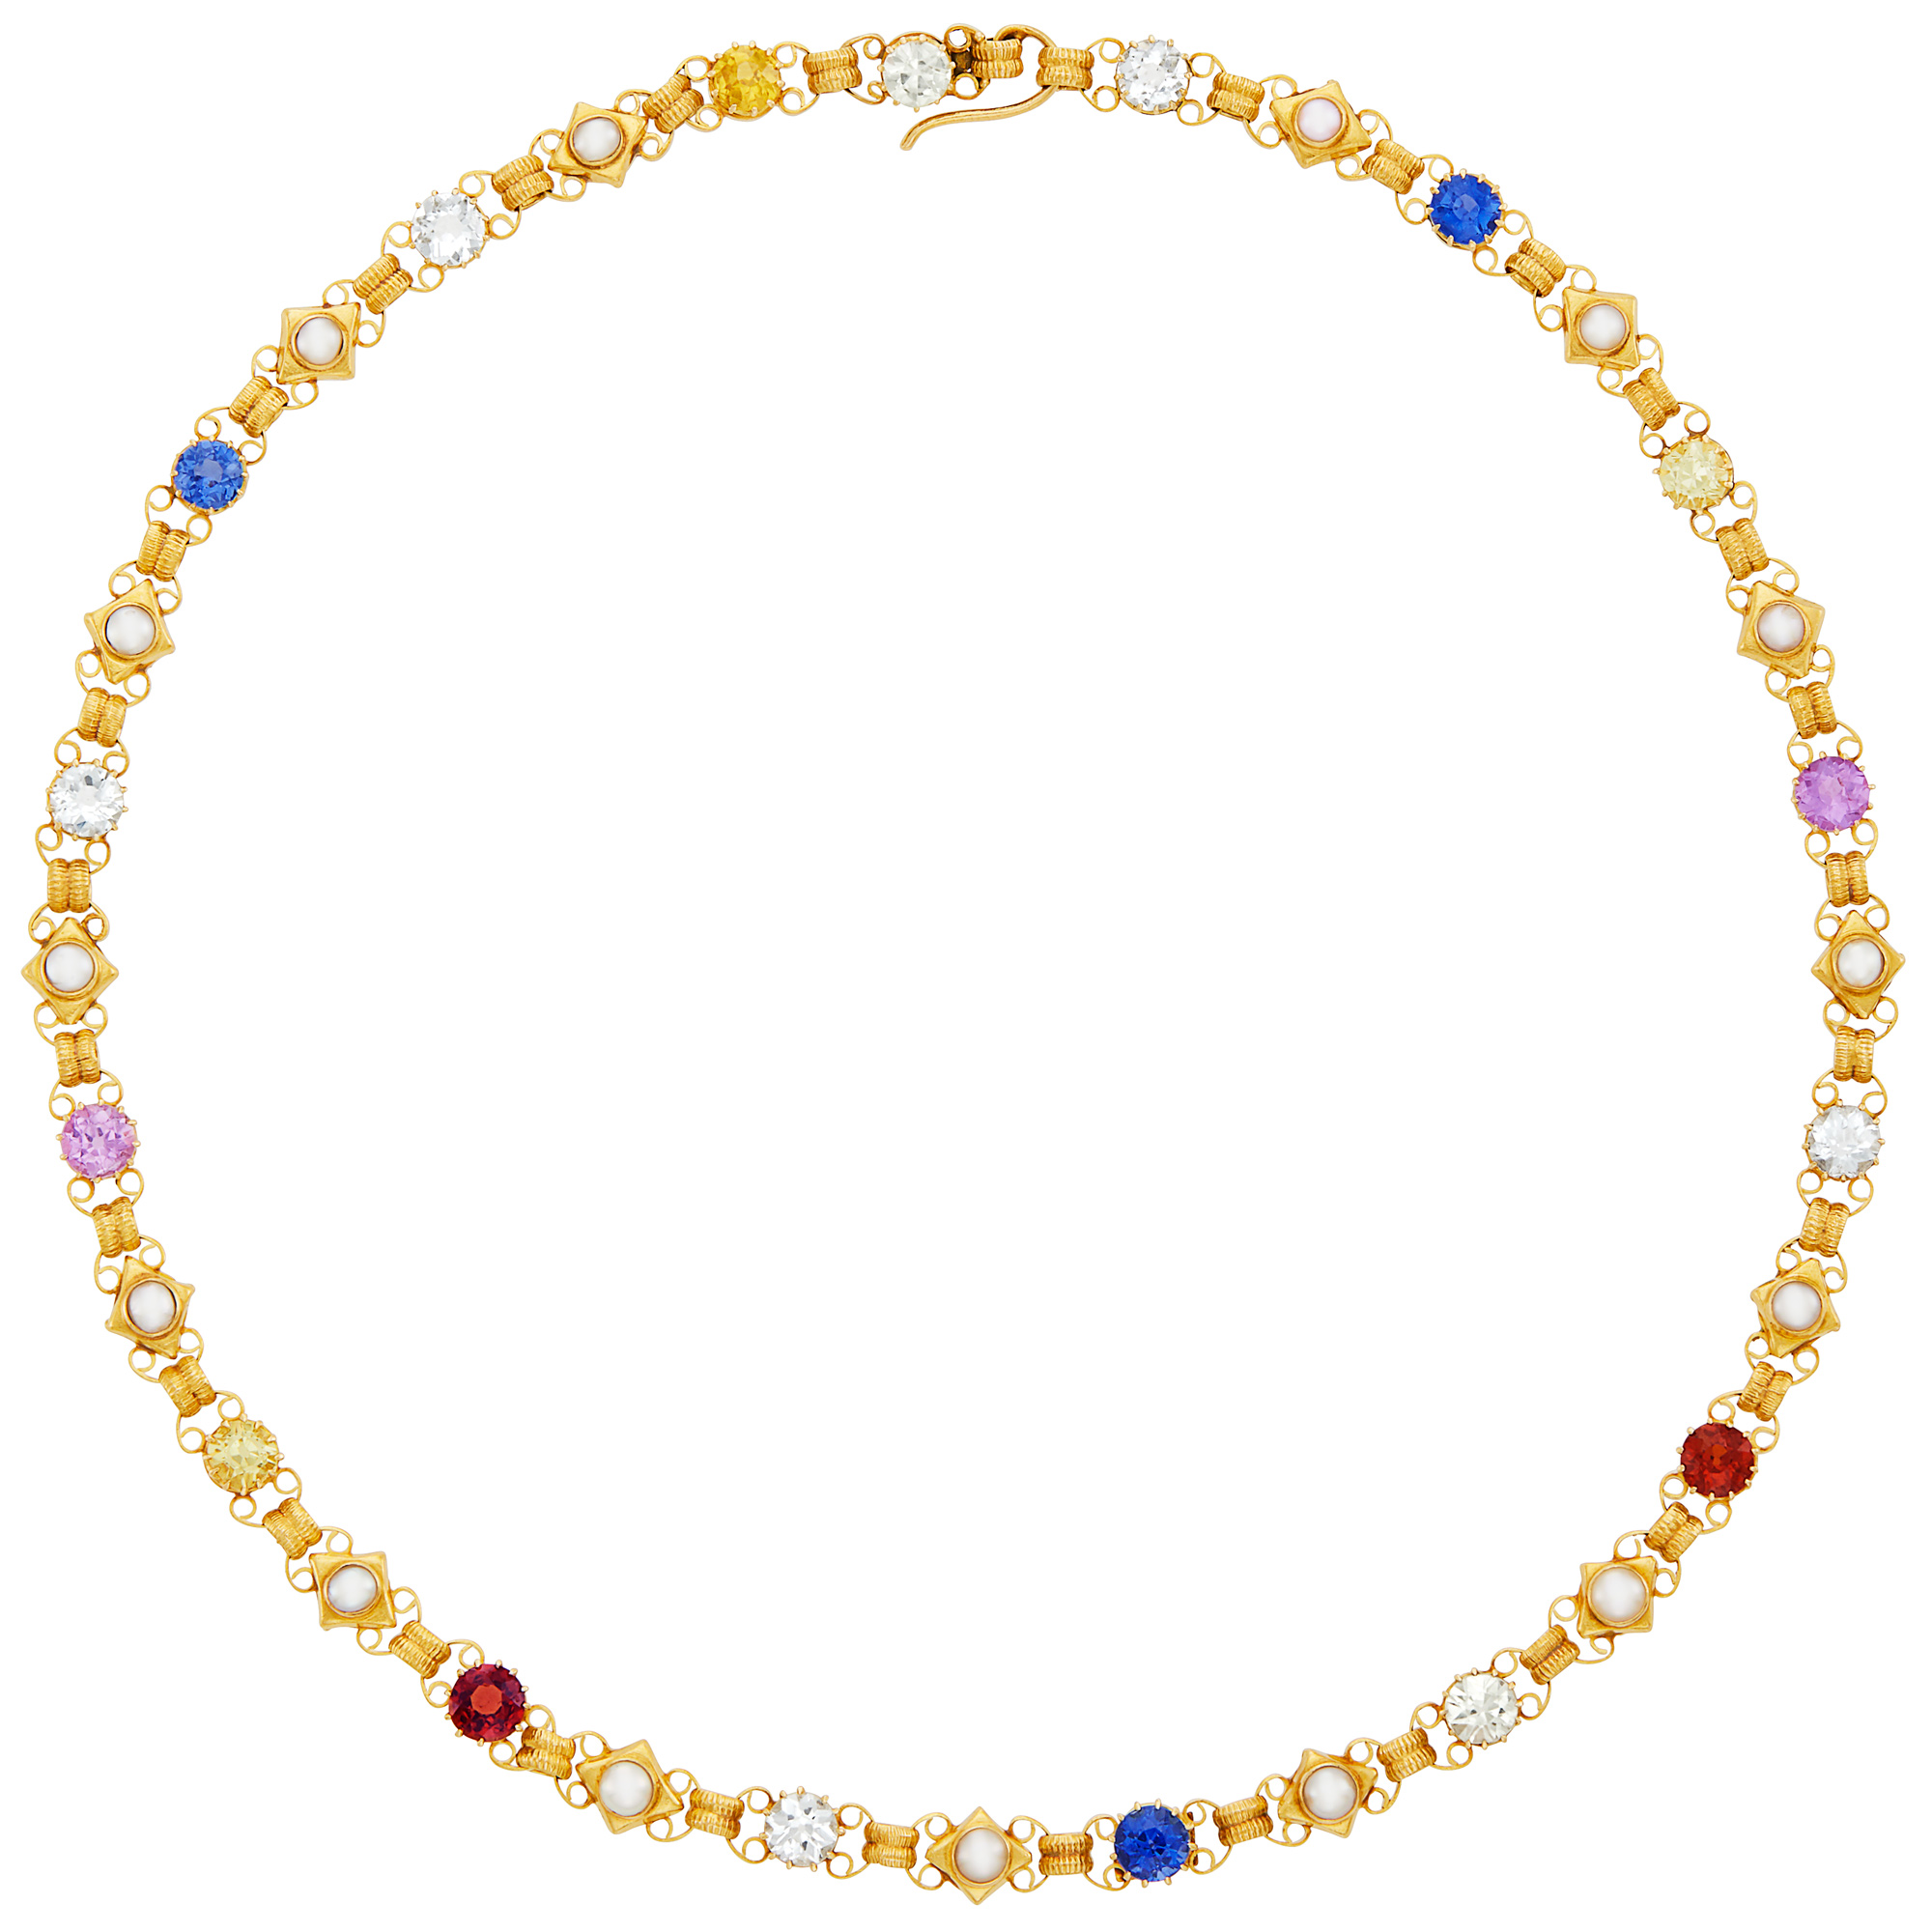 Lot image - Antique Gold, Colored Stone and Split Pearl Necklace, Attributed to Phillips of Cockspur